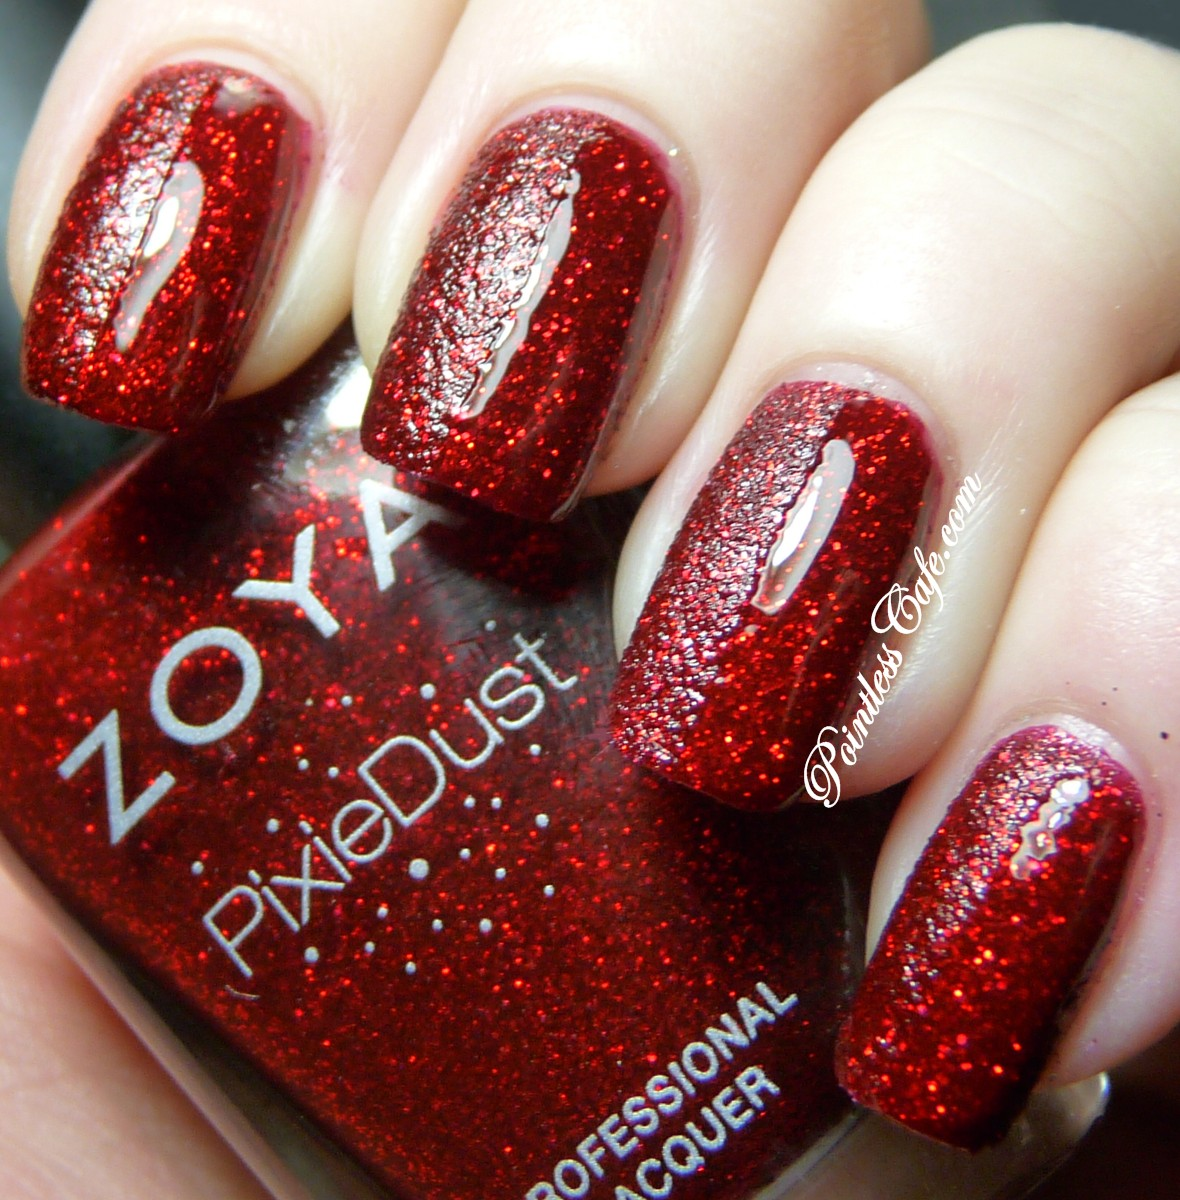 Zoya Pixie Dust Collection 2013 | Pointless Cafe